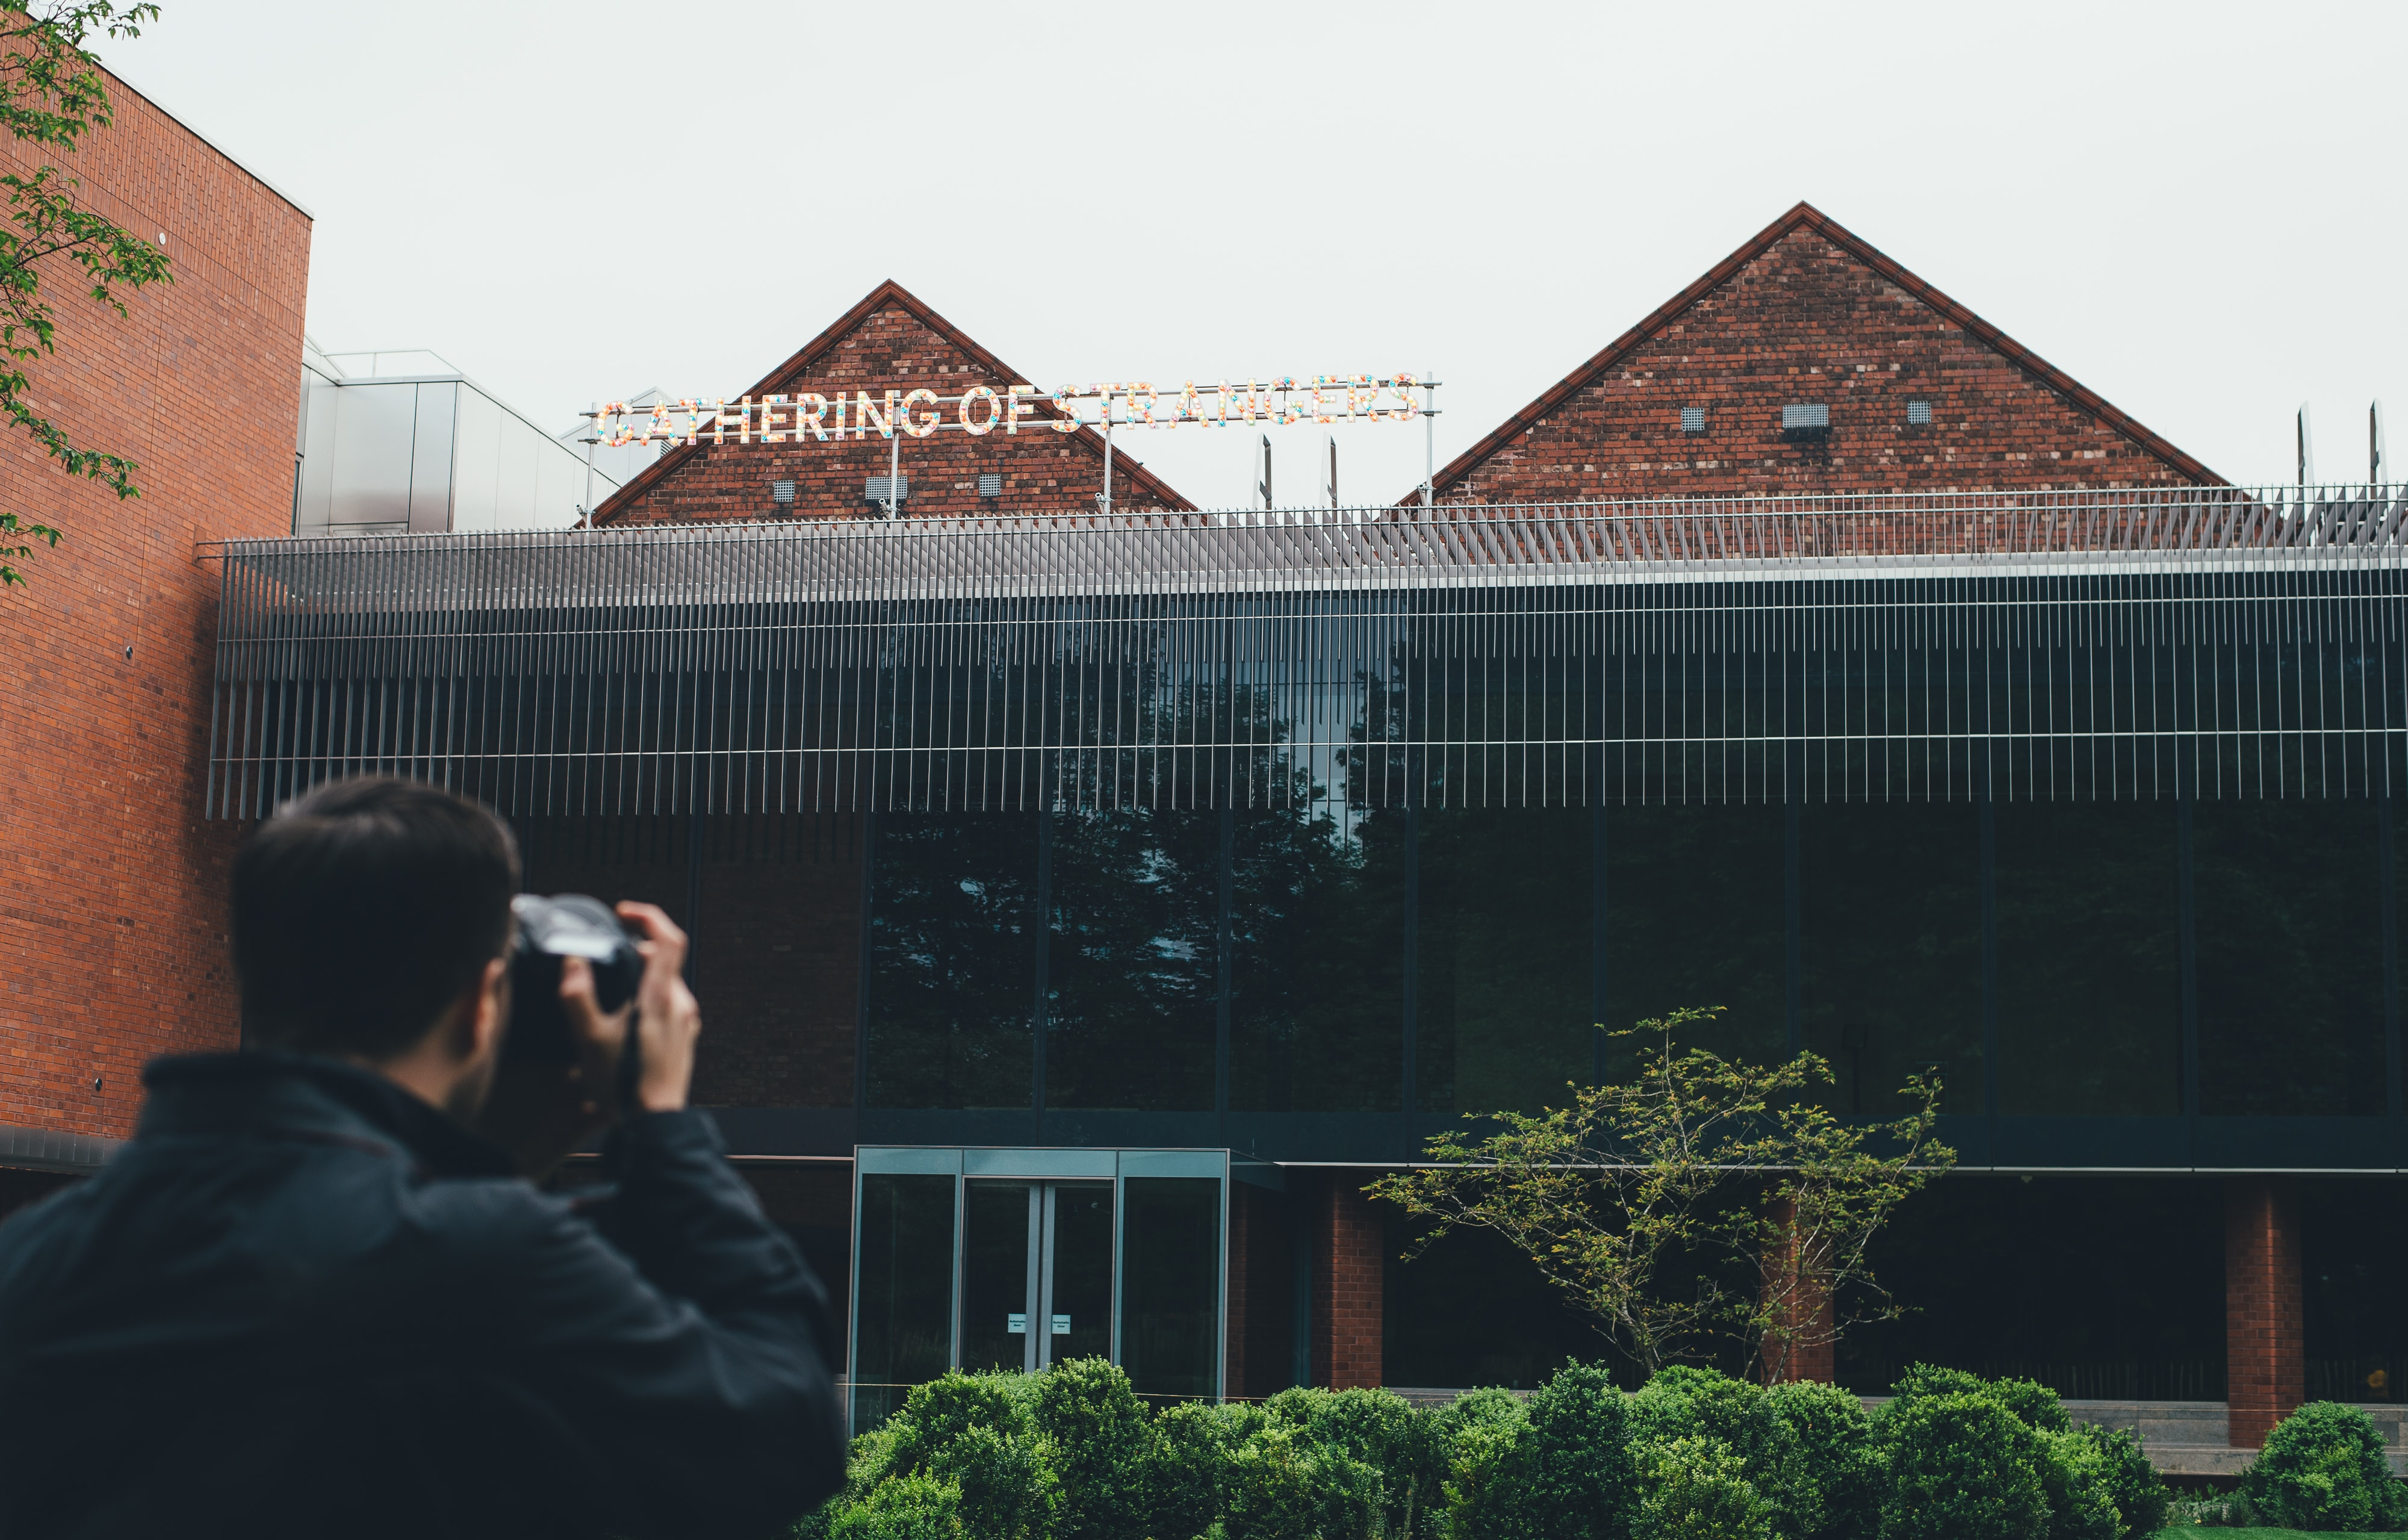 Man taking picture of gathering of strangers sign on glass roof architecture at Whitworth Art Gallery